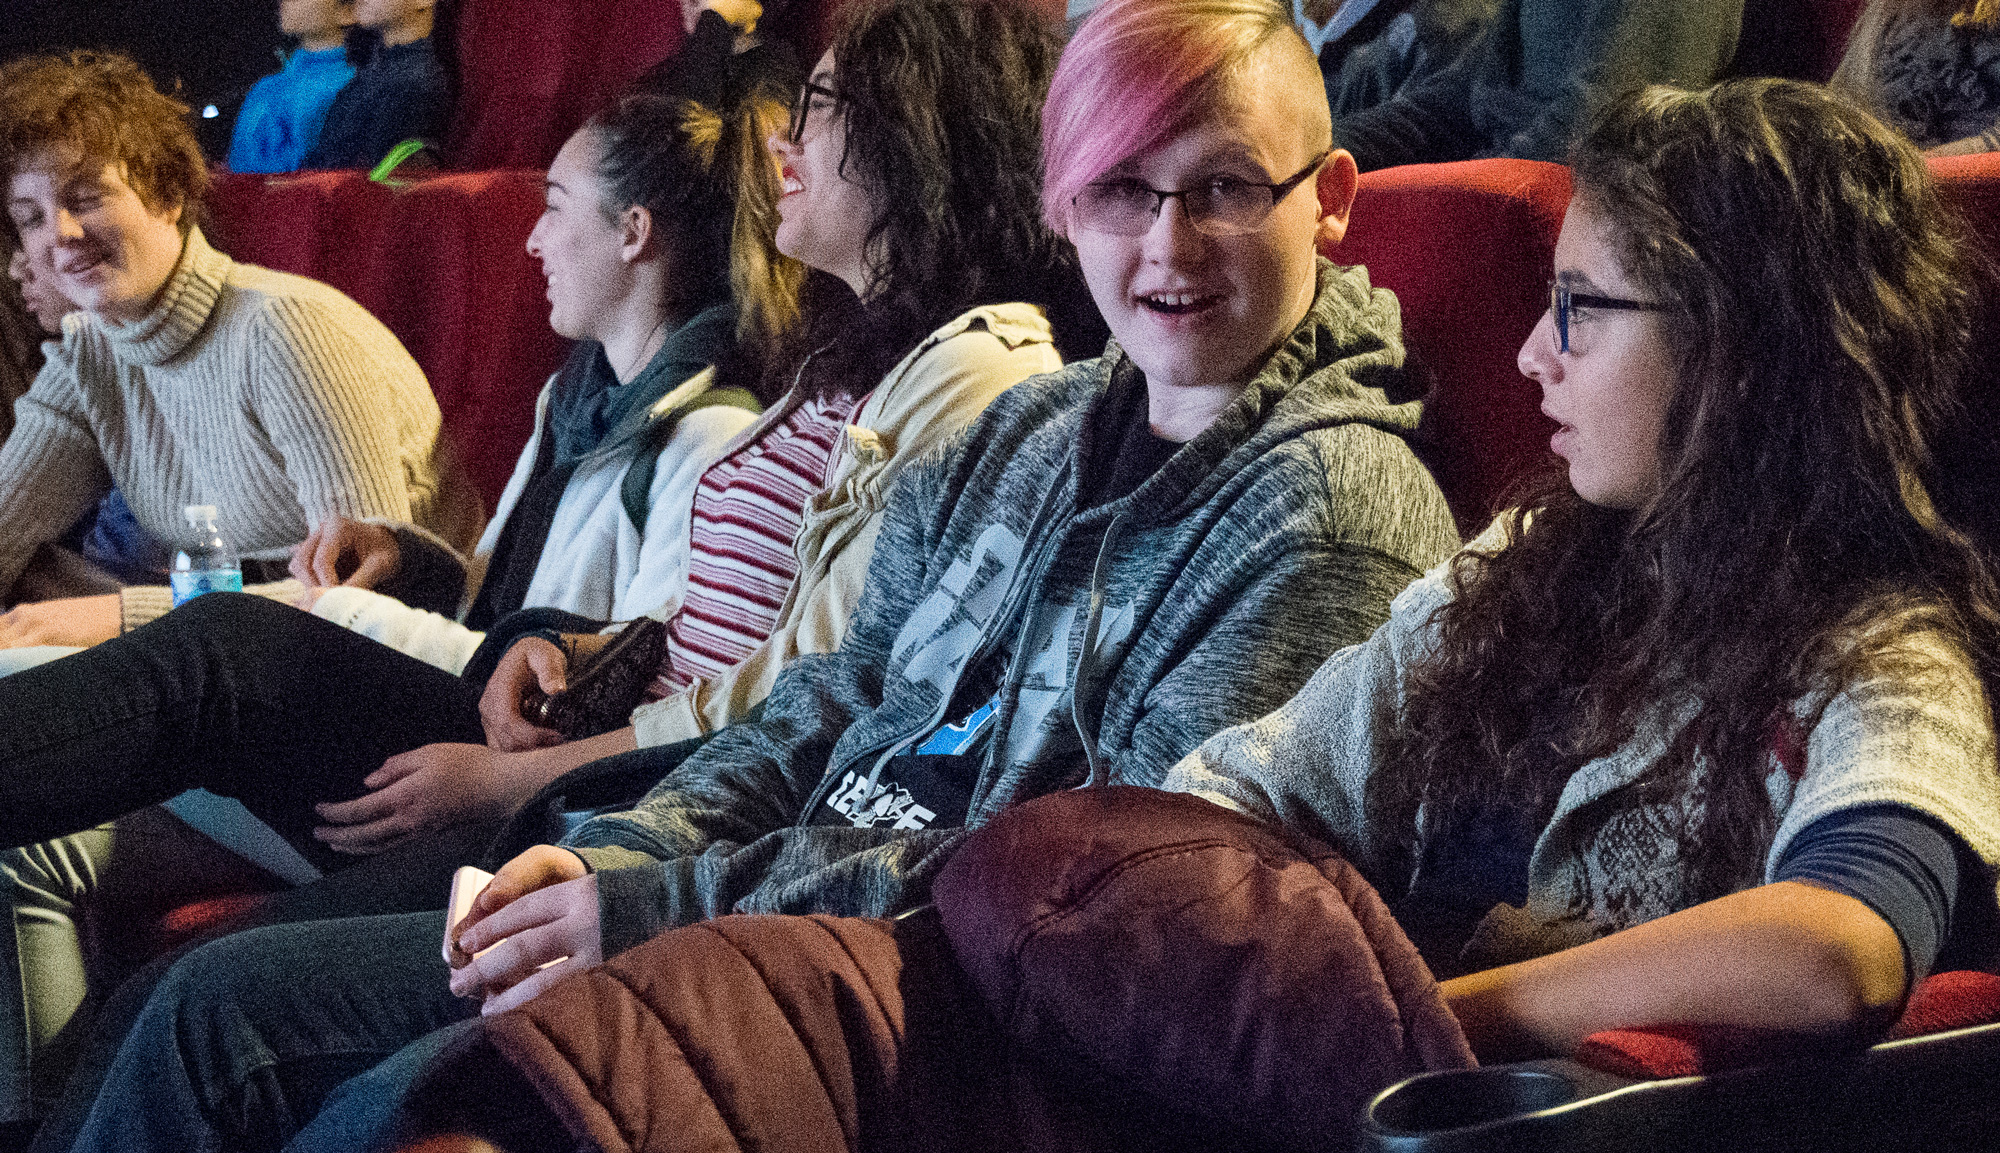 Teen screencarlynton students in cinema